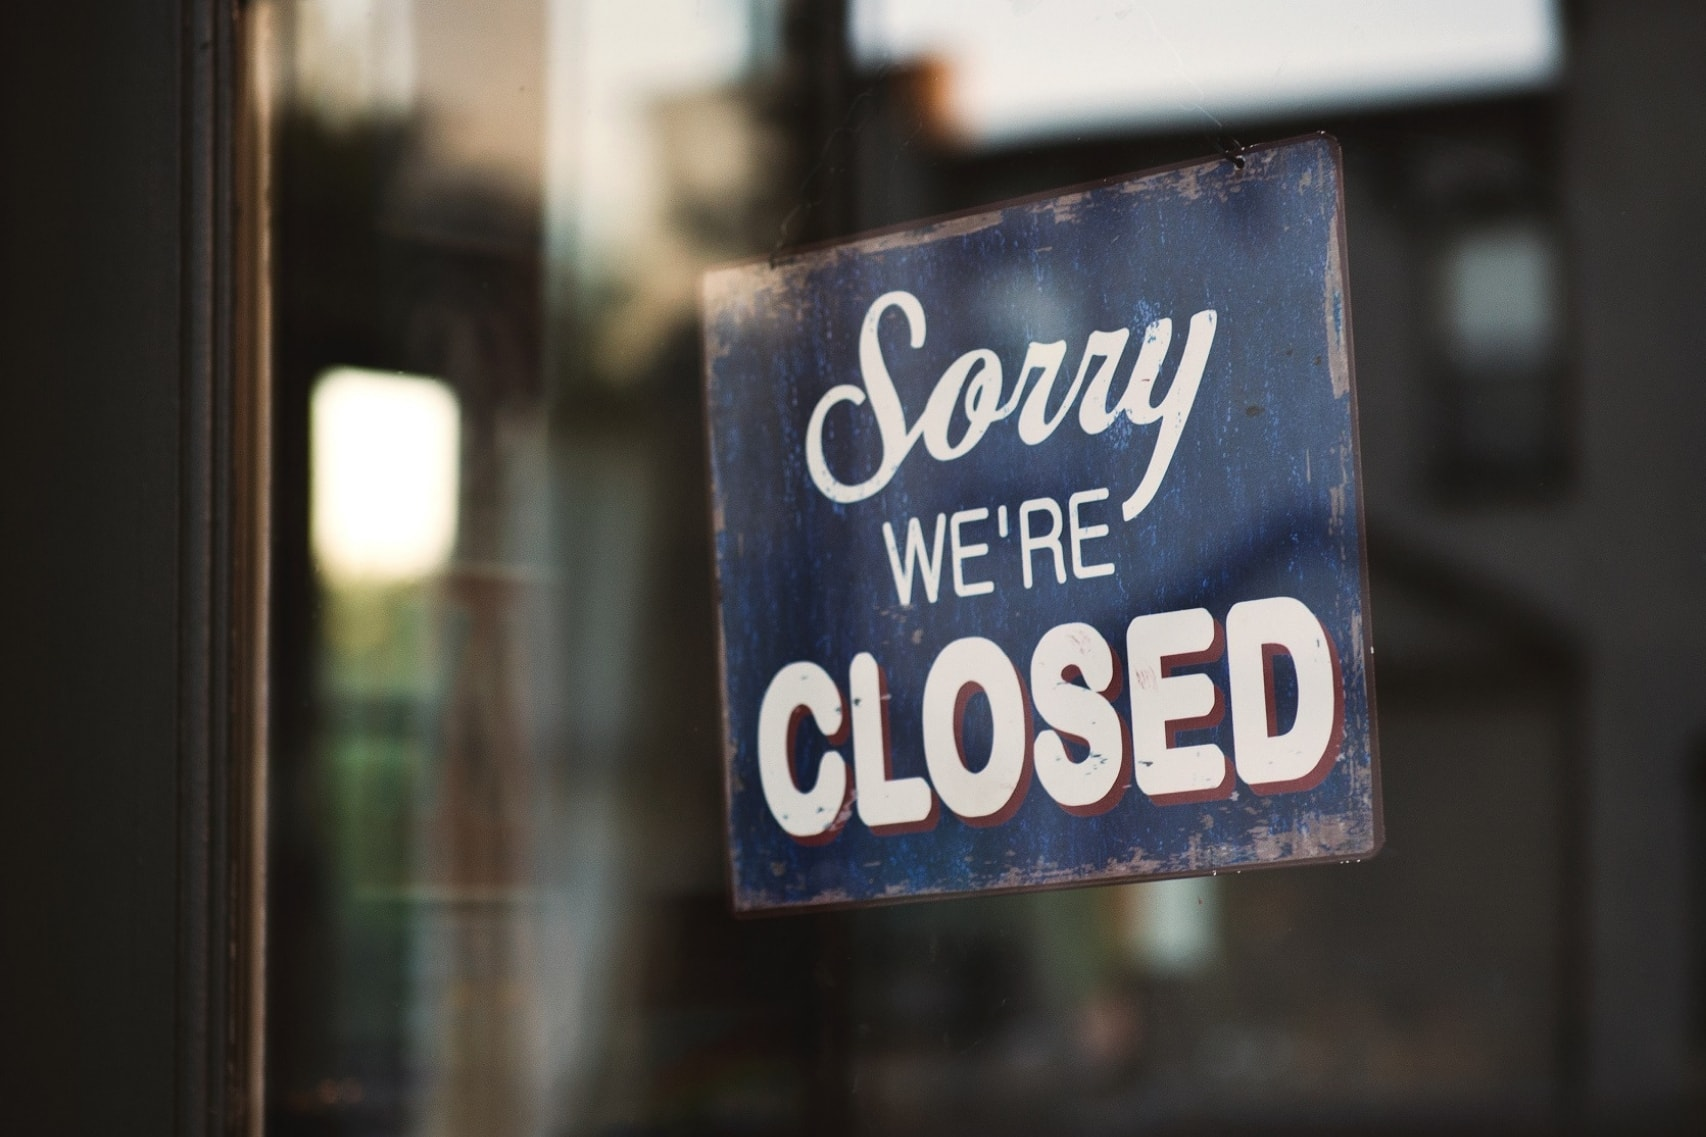 Crypto Exchange Liqui is Shutting Down, Users Have 30 Days to Withdraw Assets